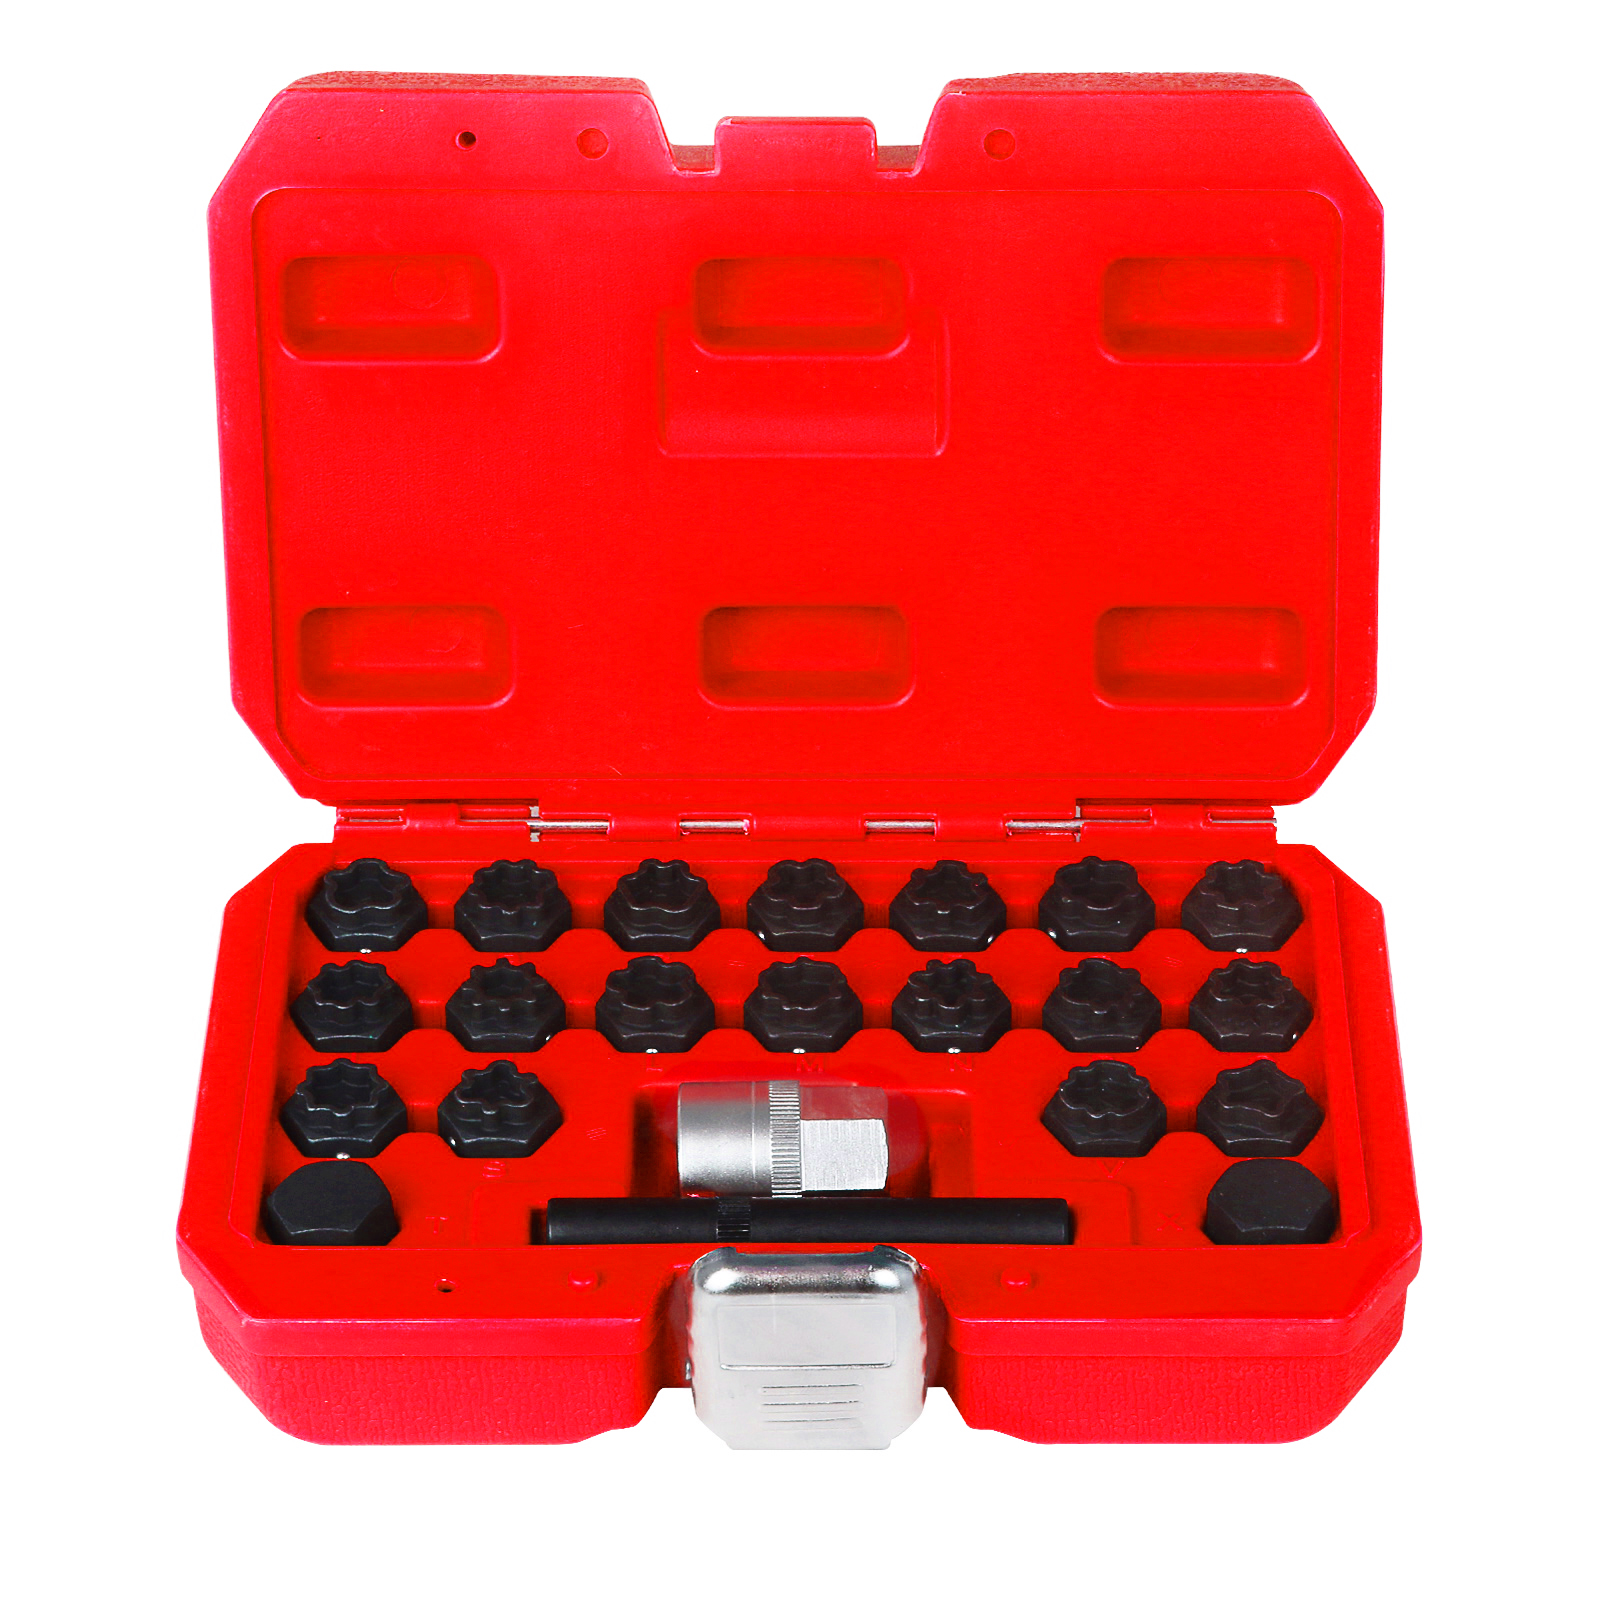 30 pcs Wheel Lock Lug Nuts Anti-Theft Lug Nuts Installation and Remover Socket Tool Removal Set for Mercedes Benz